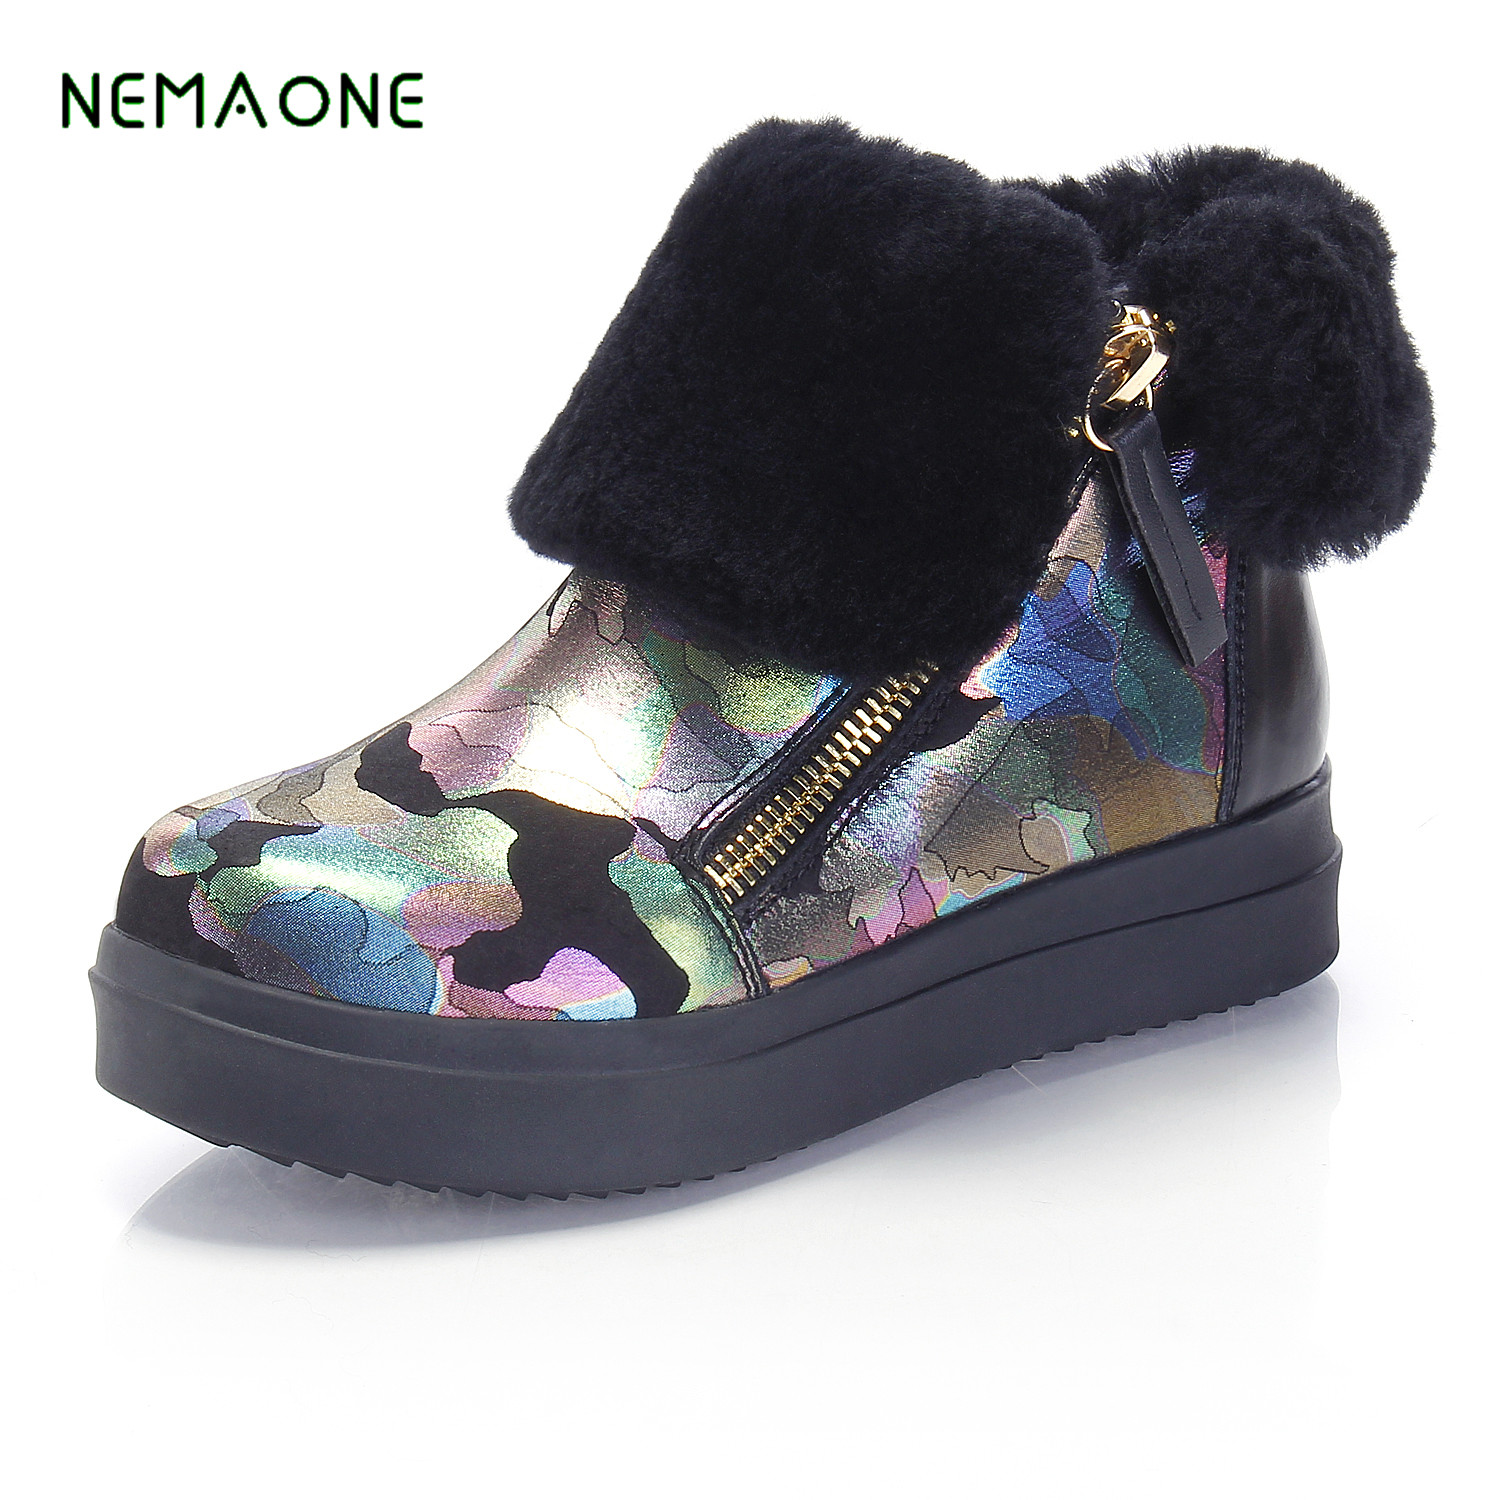 NEMAONE 2017 New Winter Women Snow Boots Ankle Shoes Handmade Plush Shoes Warm Boots Tassel Shoes